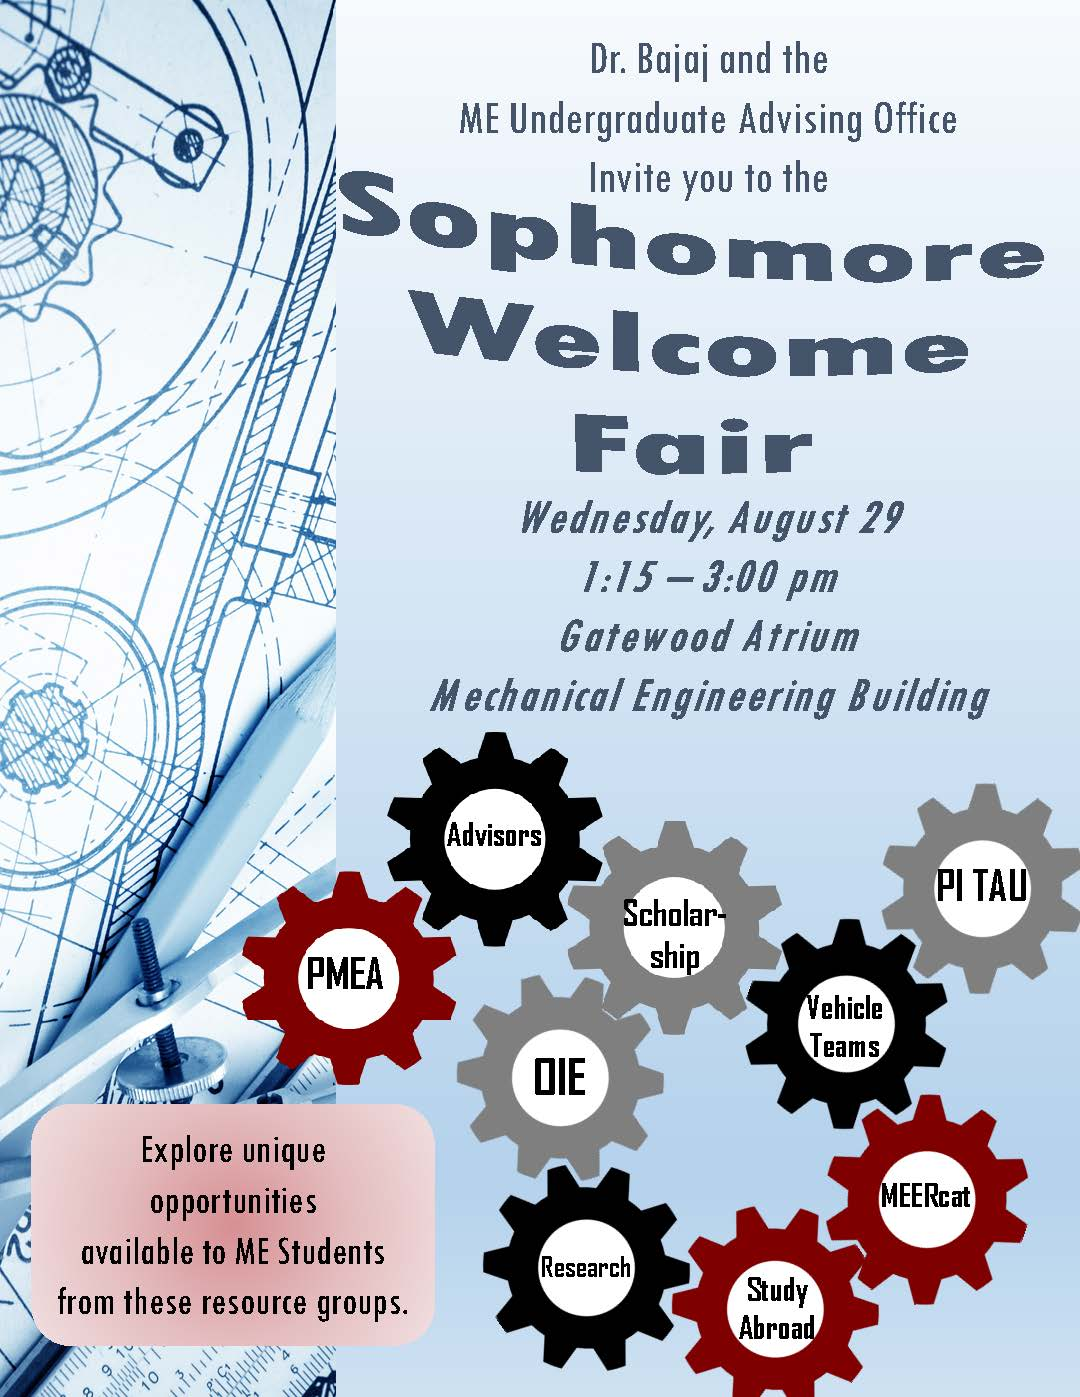 Sophomore Welcome Fall 2018_Student